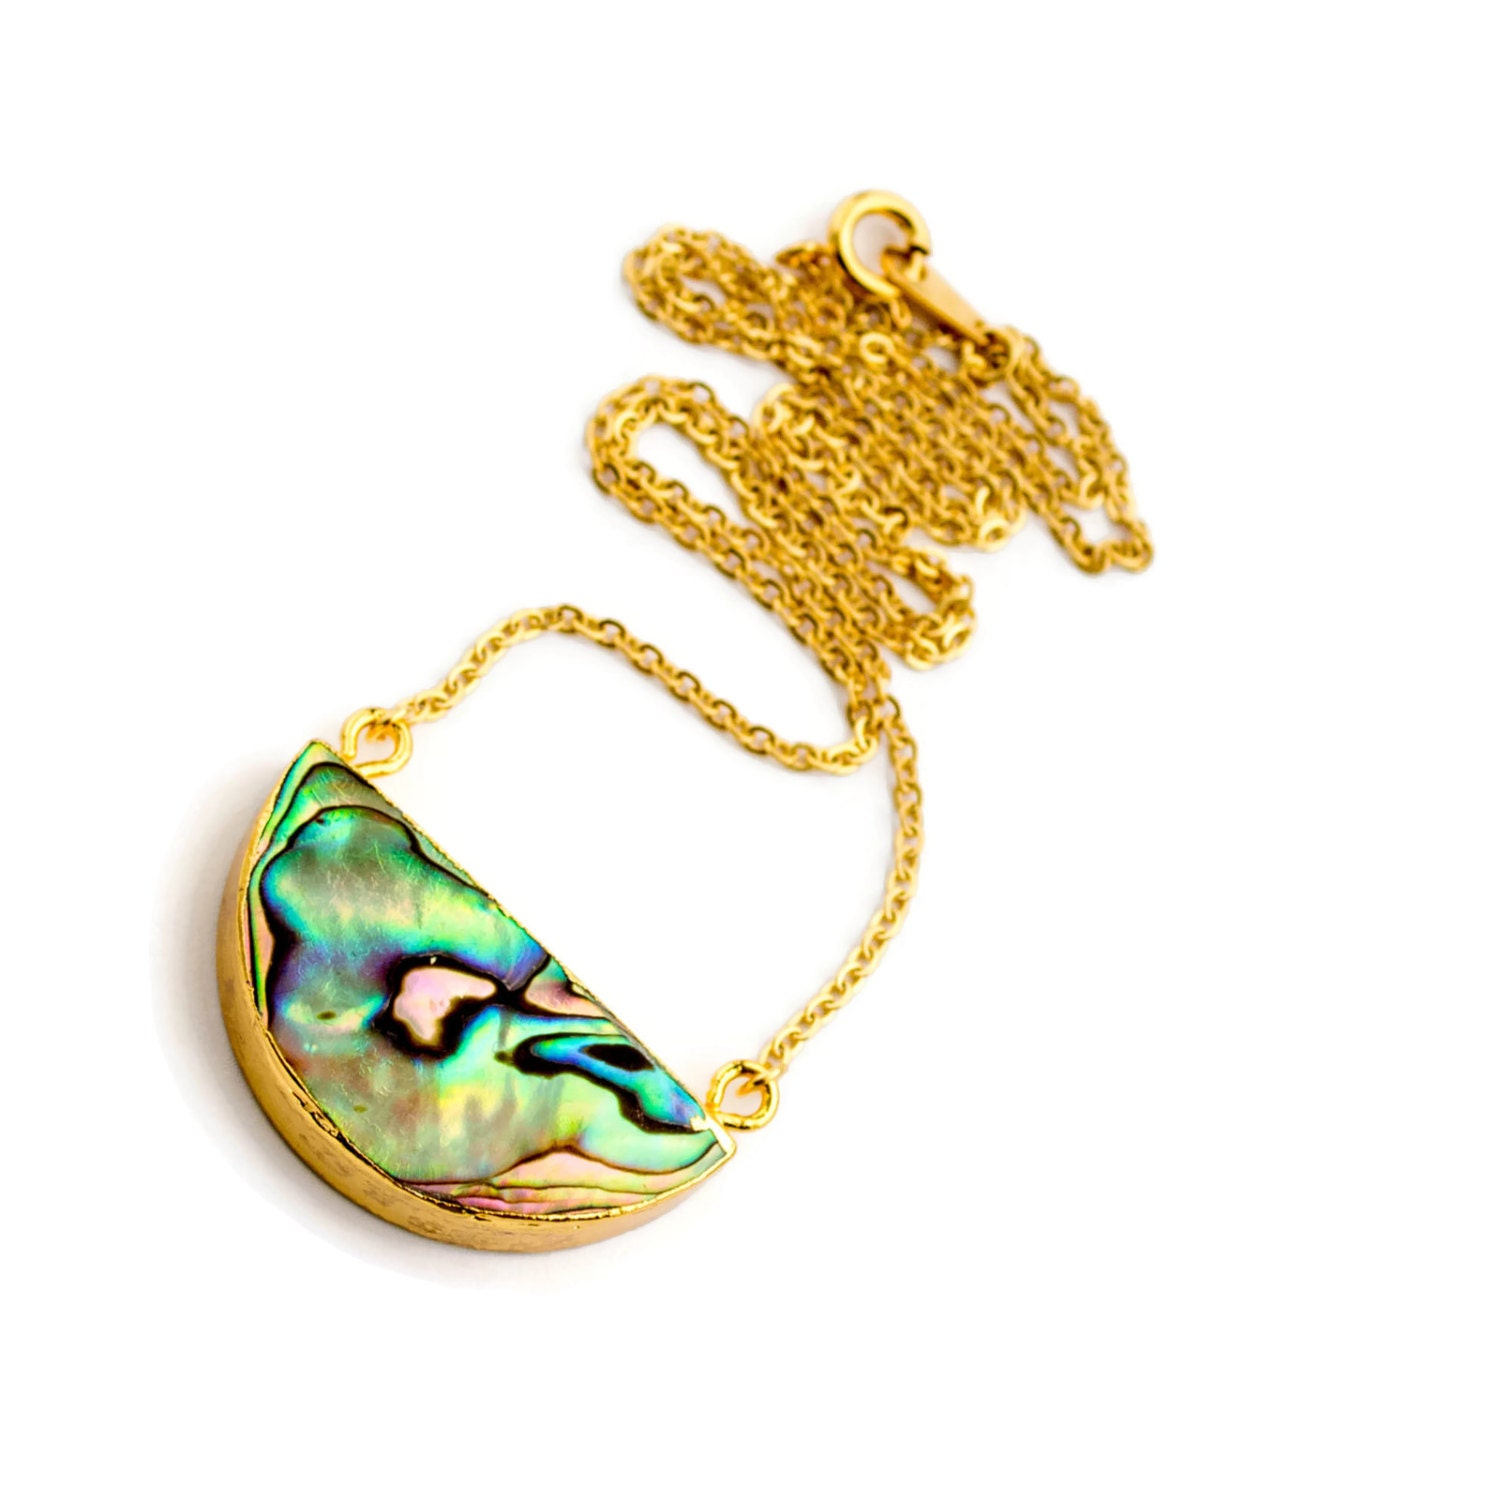 abalone necklace abalone shell necklace paua shell necklace